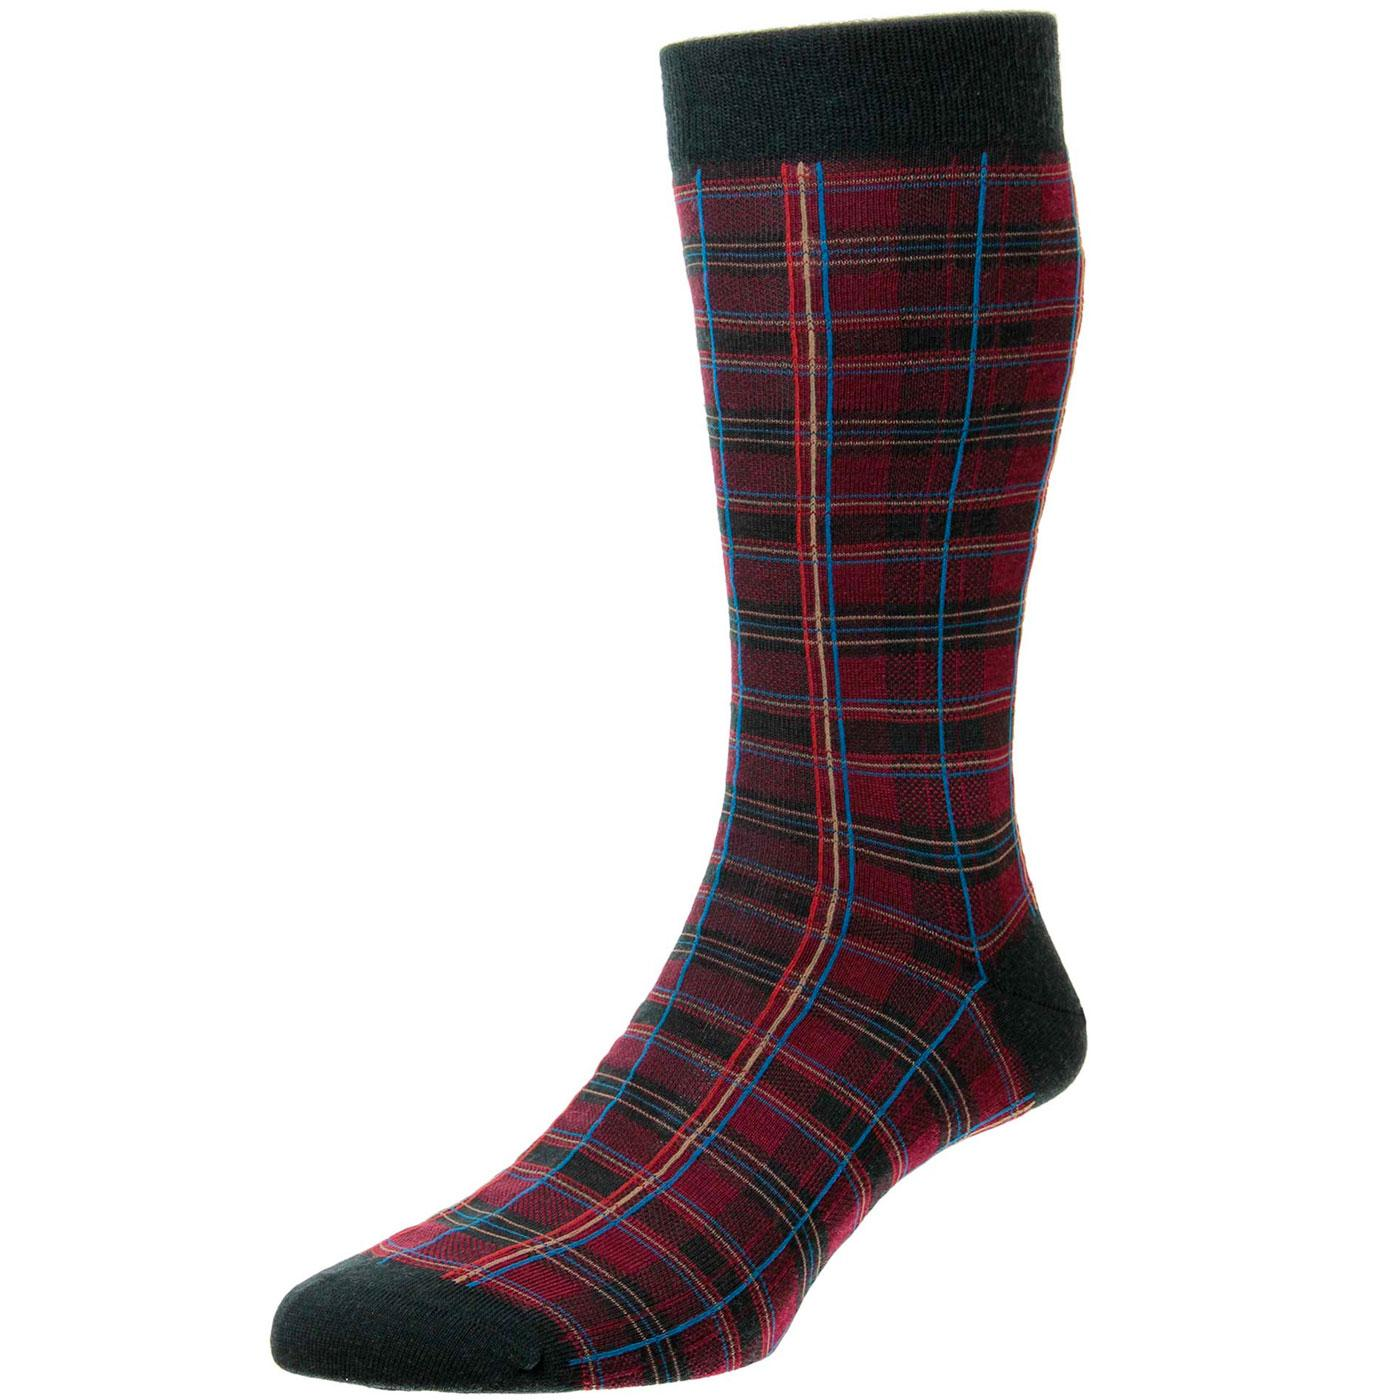 + Tarlton PANTHERELLA Retro Mod Tartan Socks GREEN